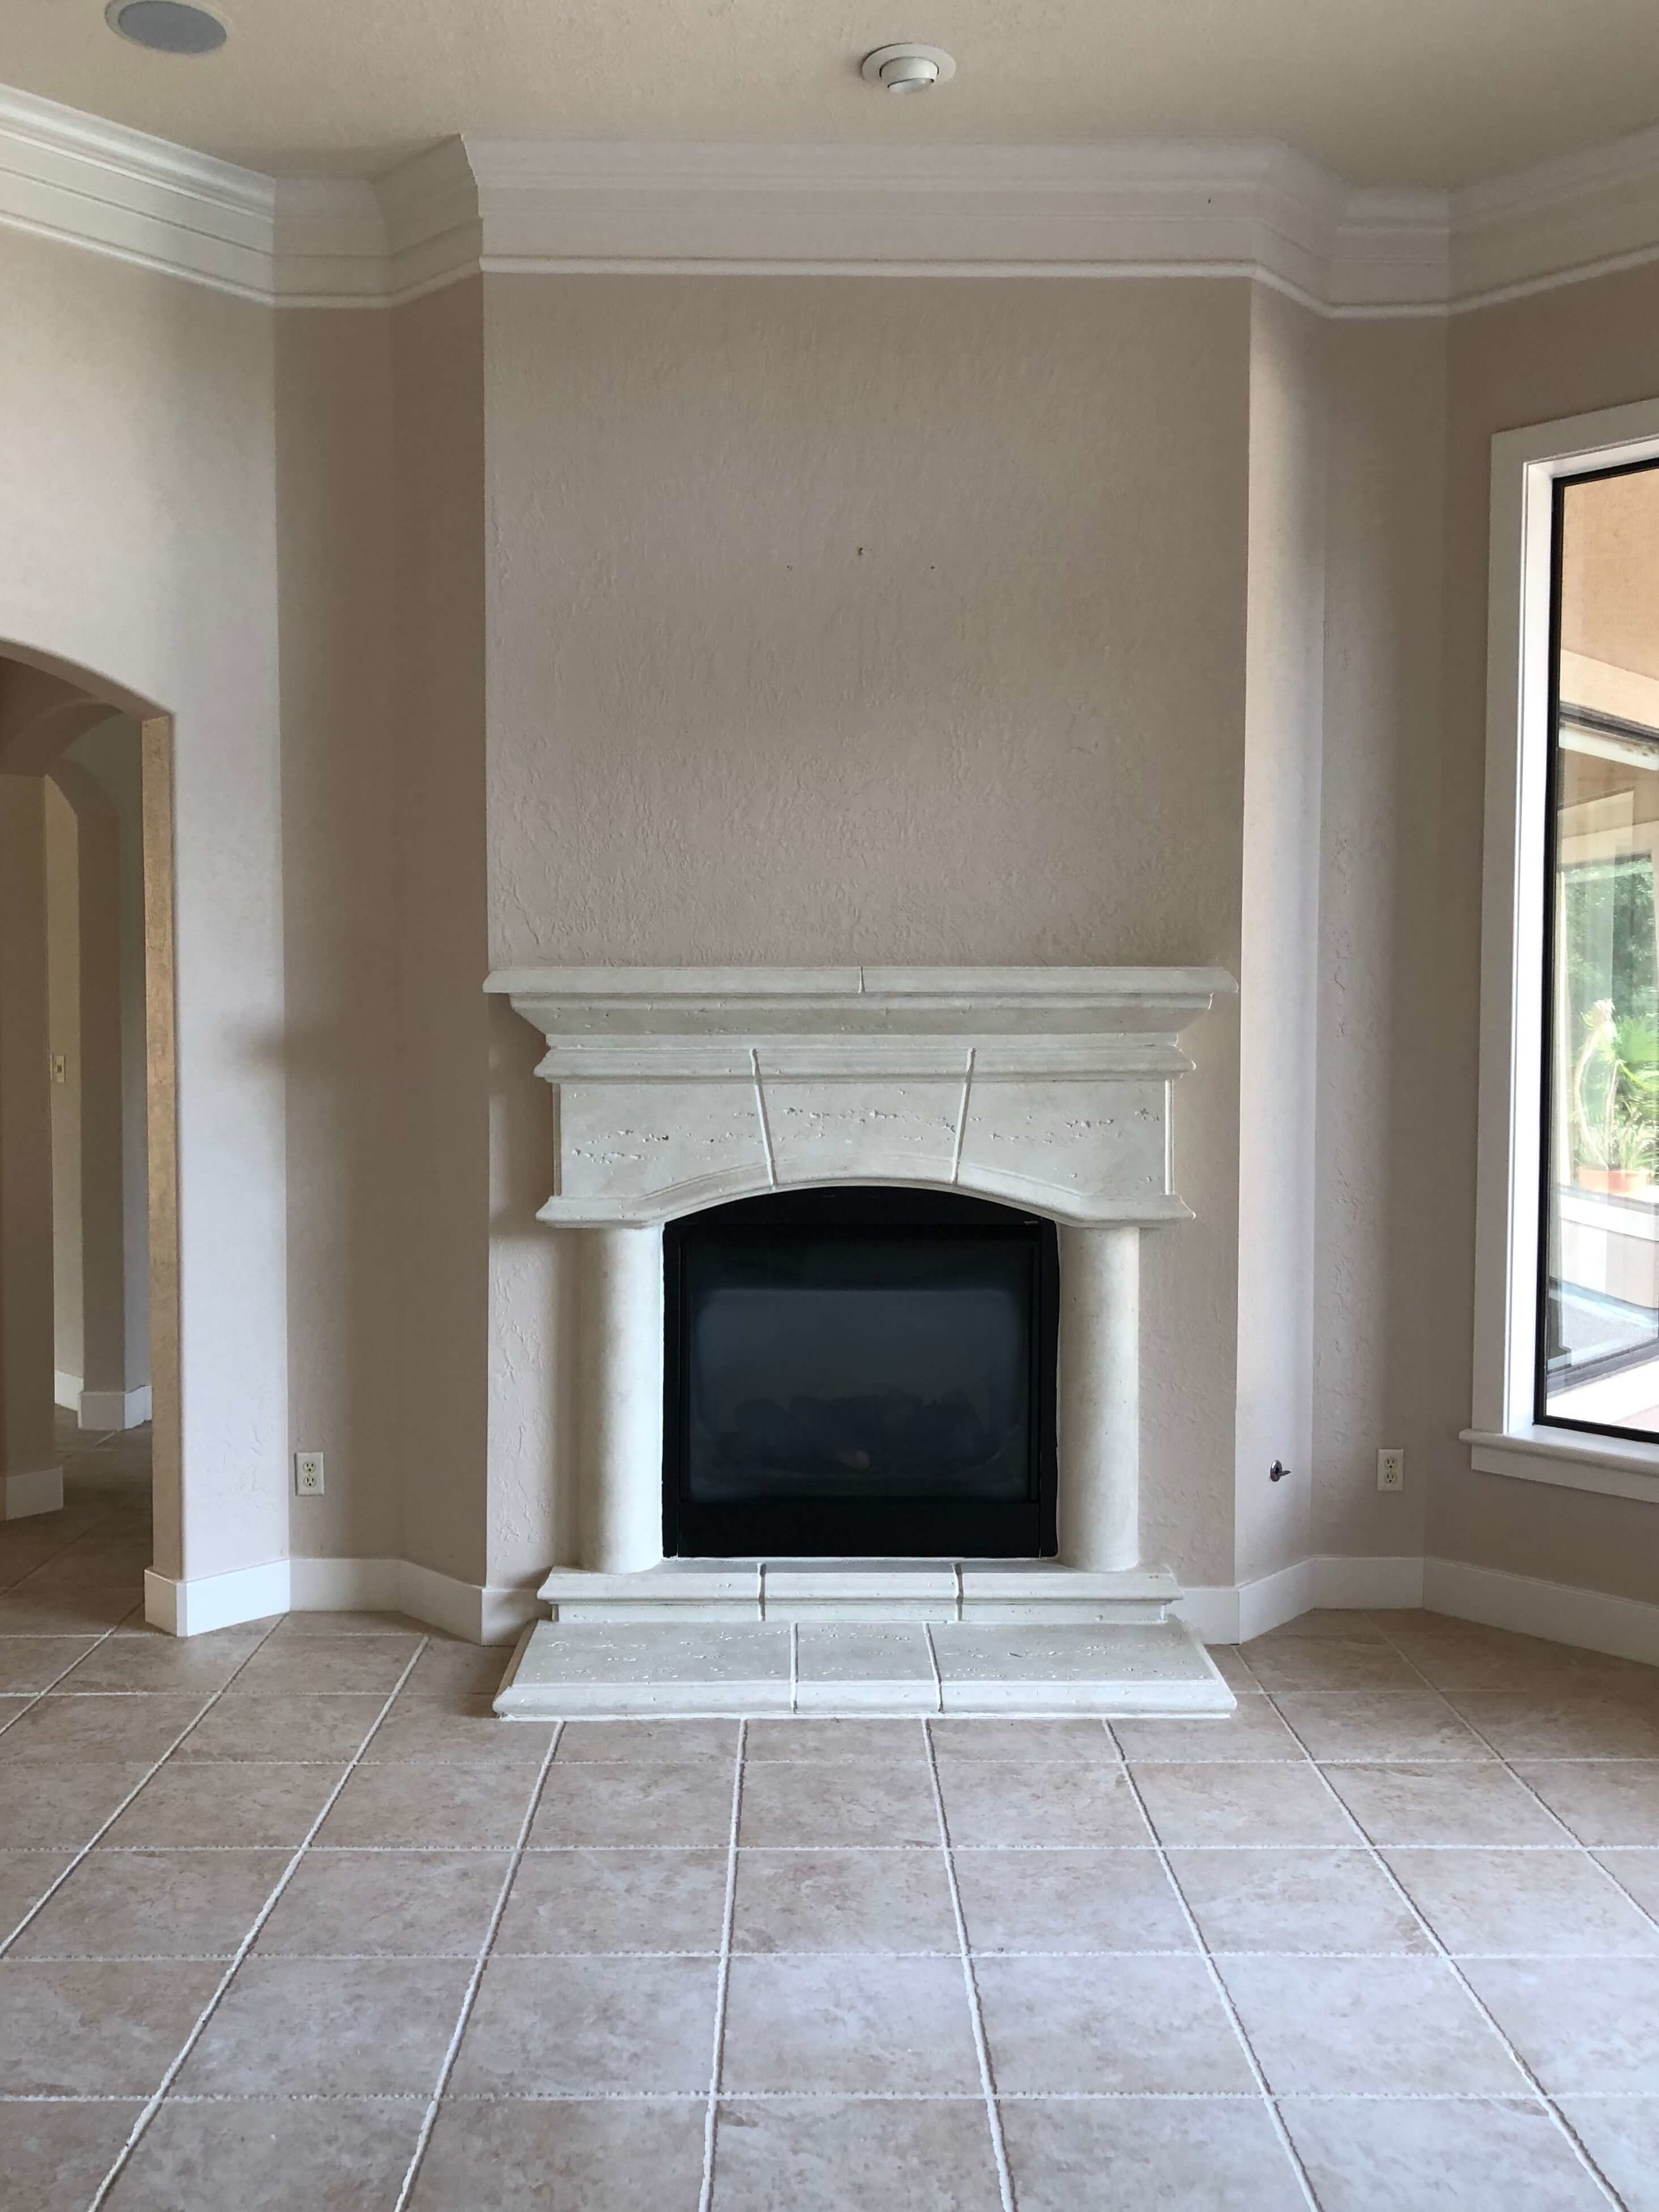 BEFORE REMODEL - Living room fp with chunky mouldings and pinkish mauve wall color